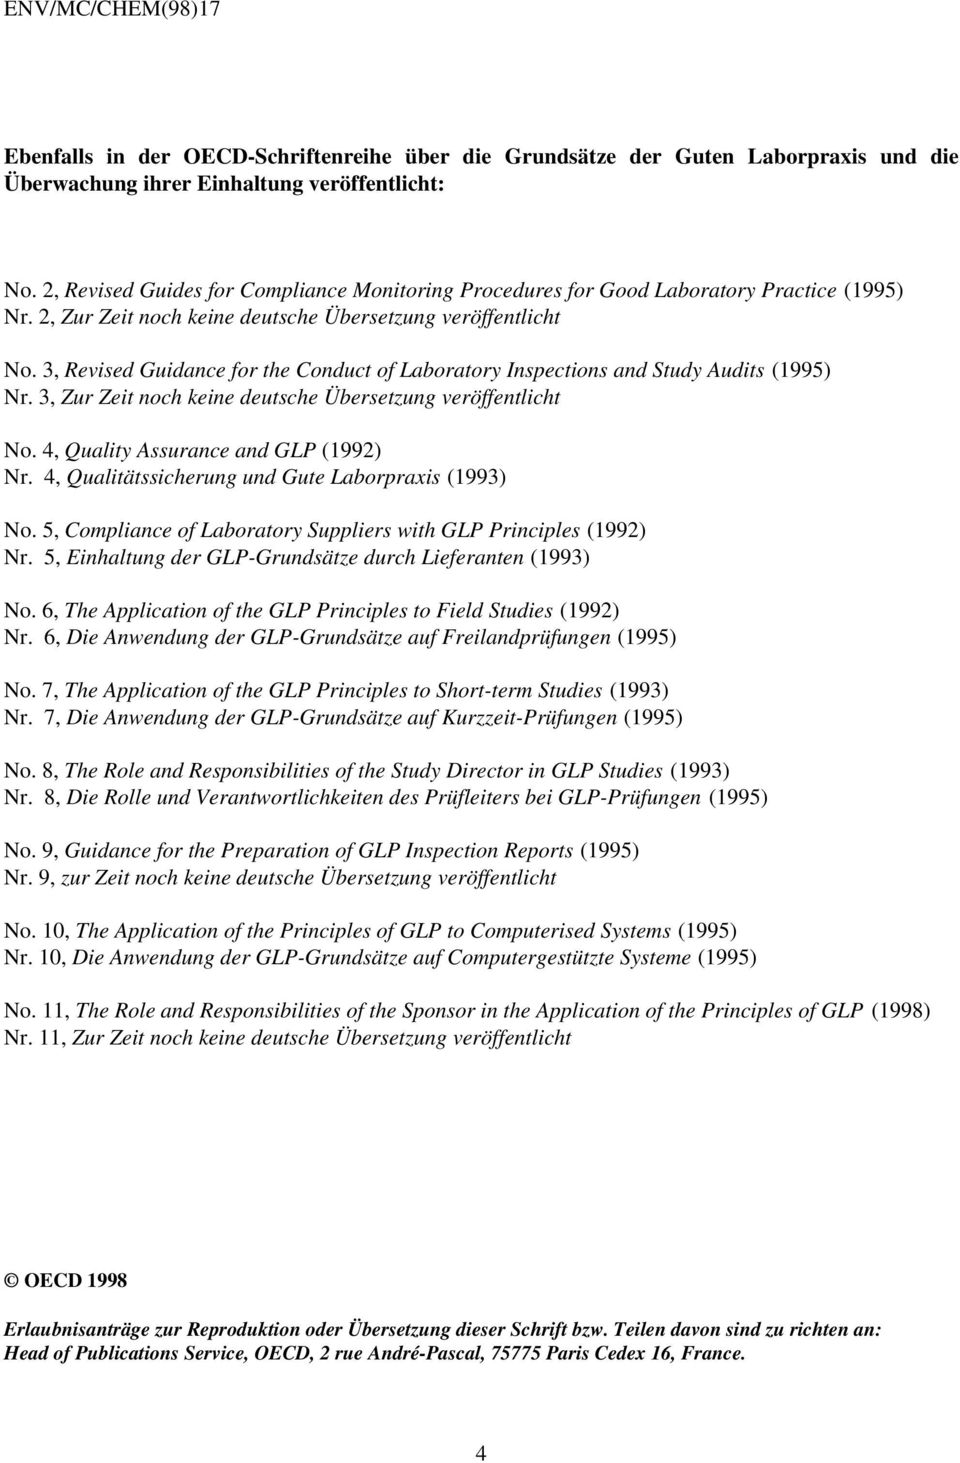 3, Revised Guidance for the Conduct of Laboratory Inspections and Study Audits (1995) Nr. 3, Zur Zeit noch keine deutsche Übersetzung veröffentlicht No. 4, Quality Assurance and GLP (1992) Nr.